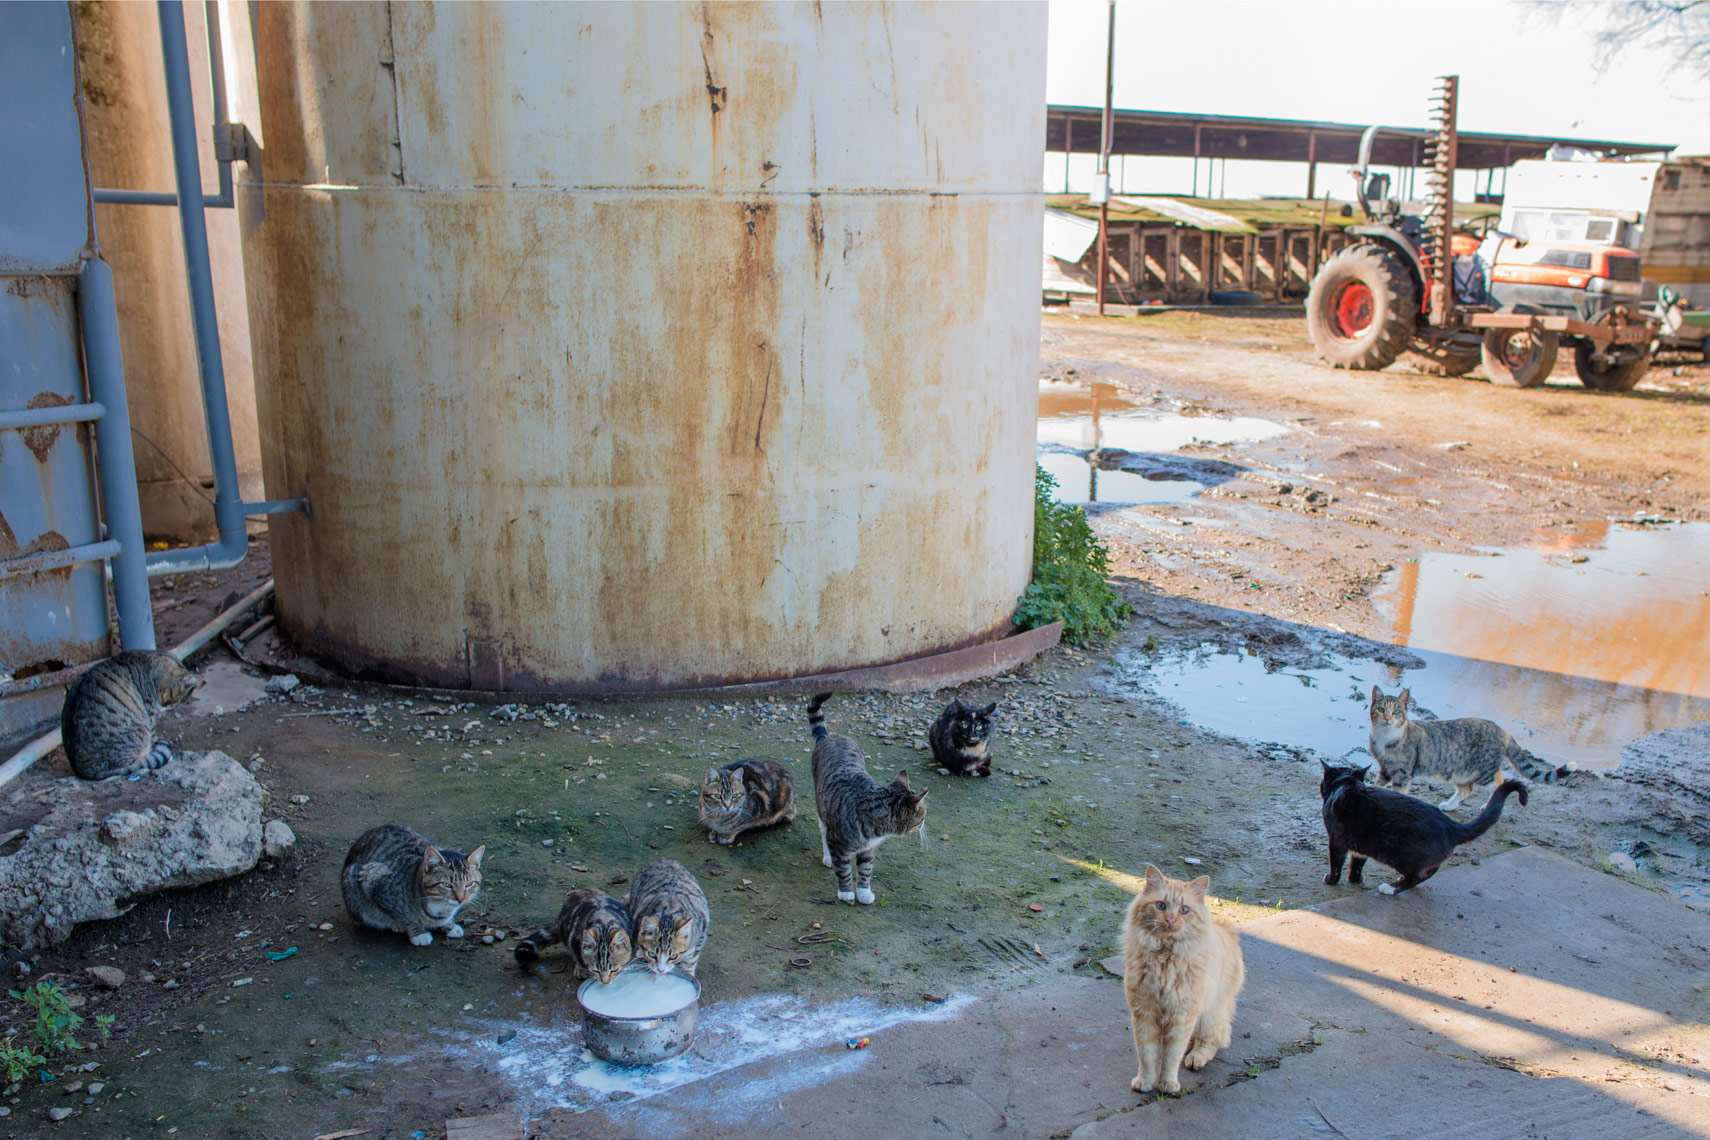 Dairy farm cats